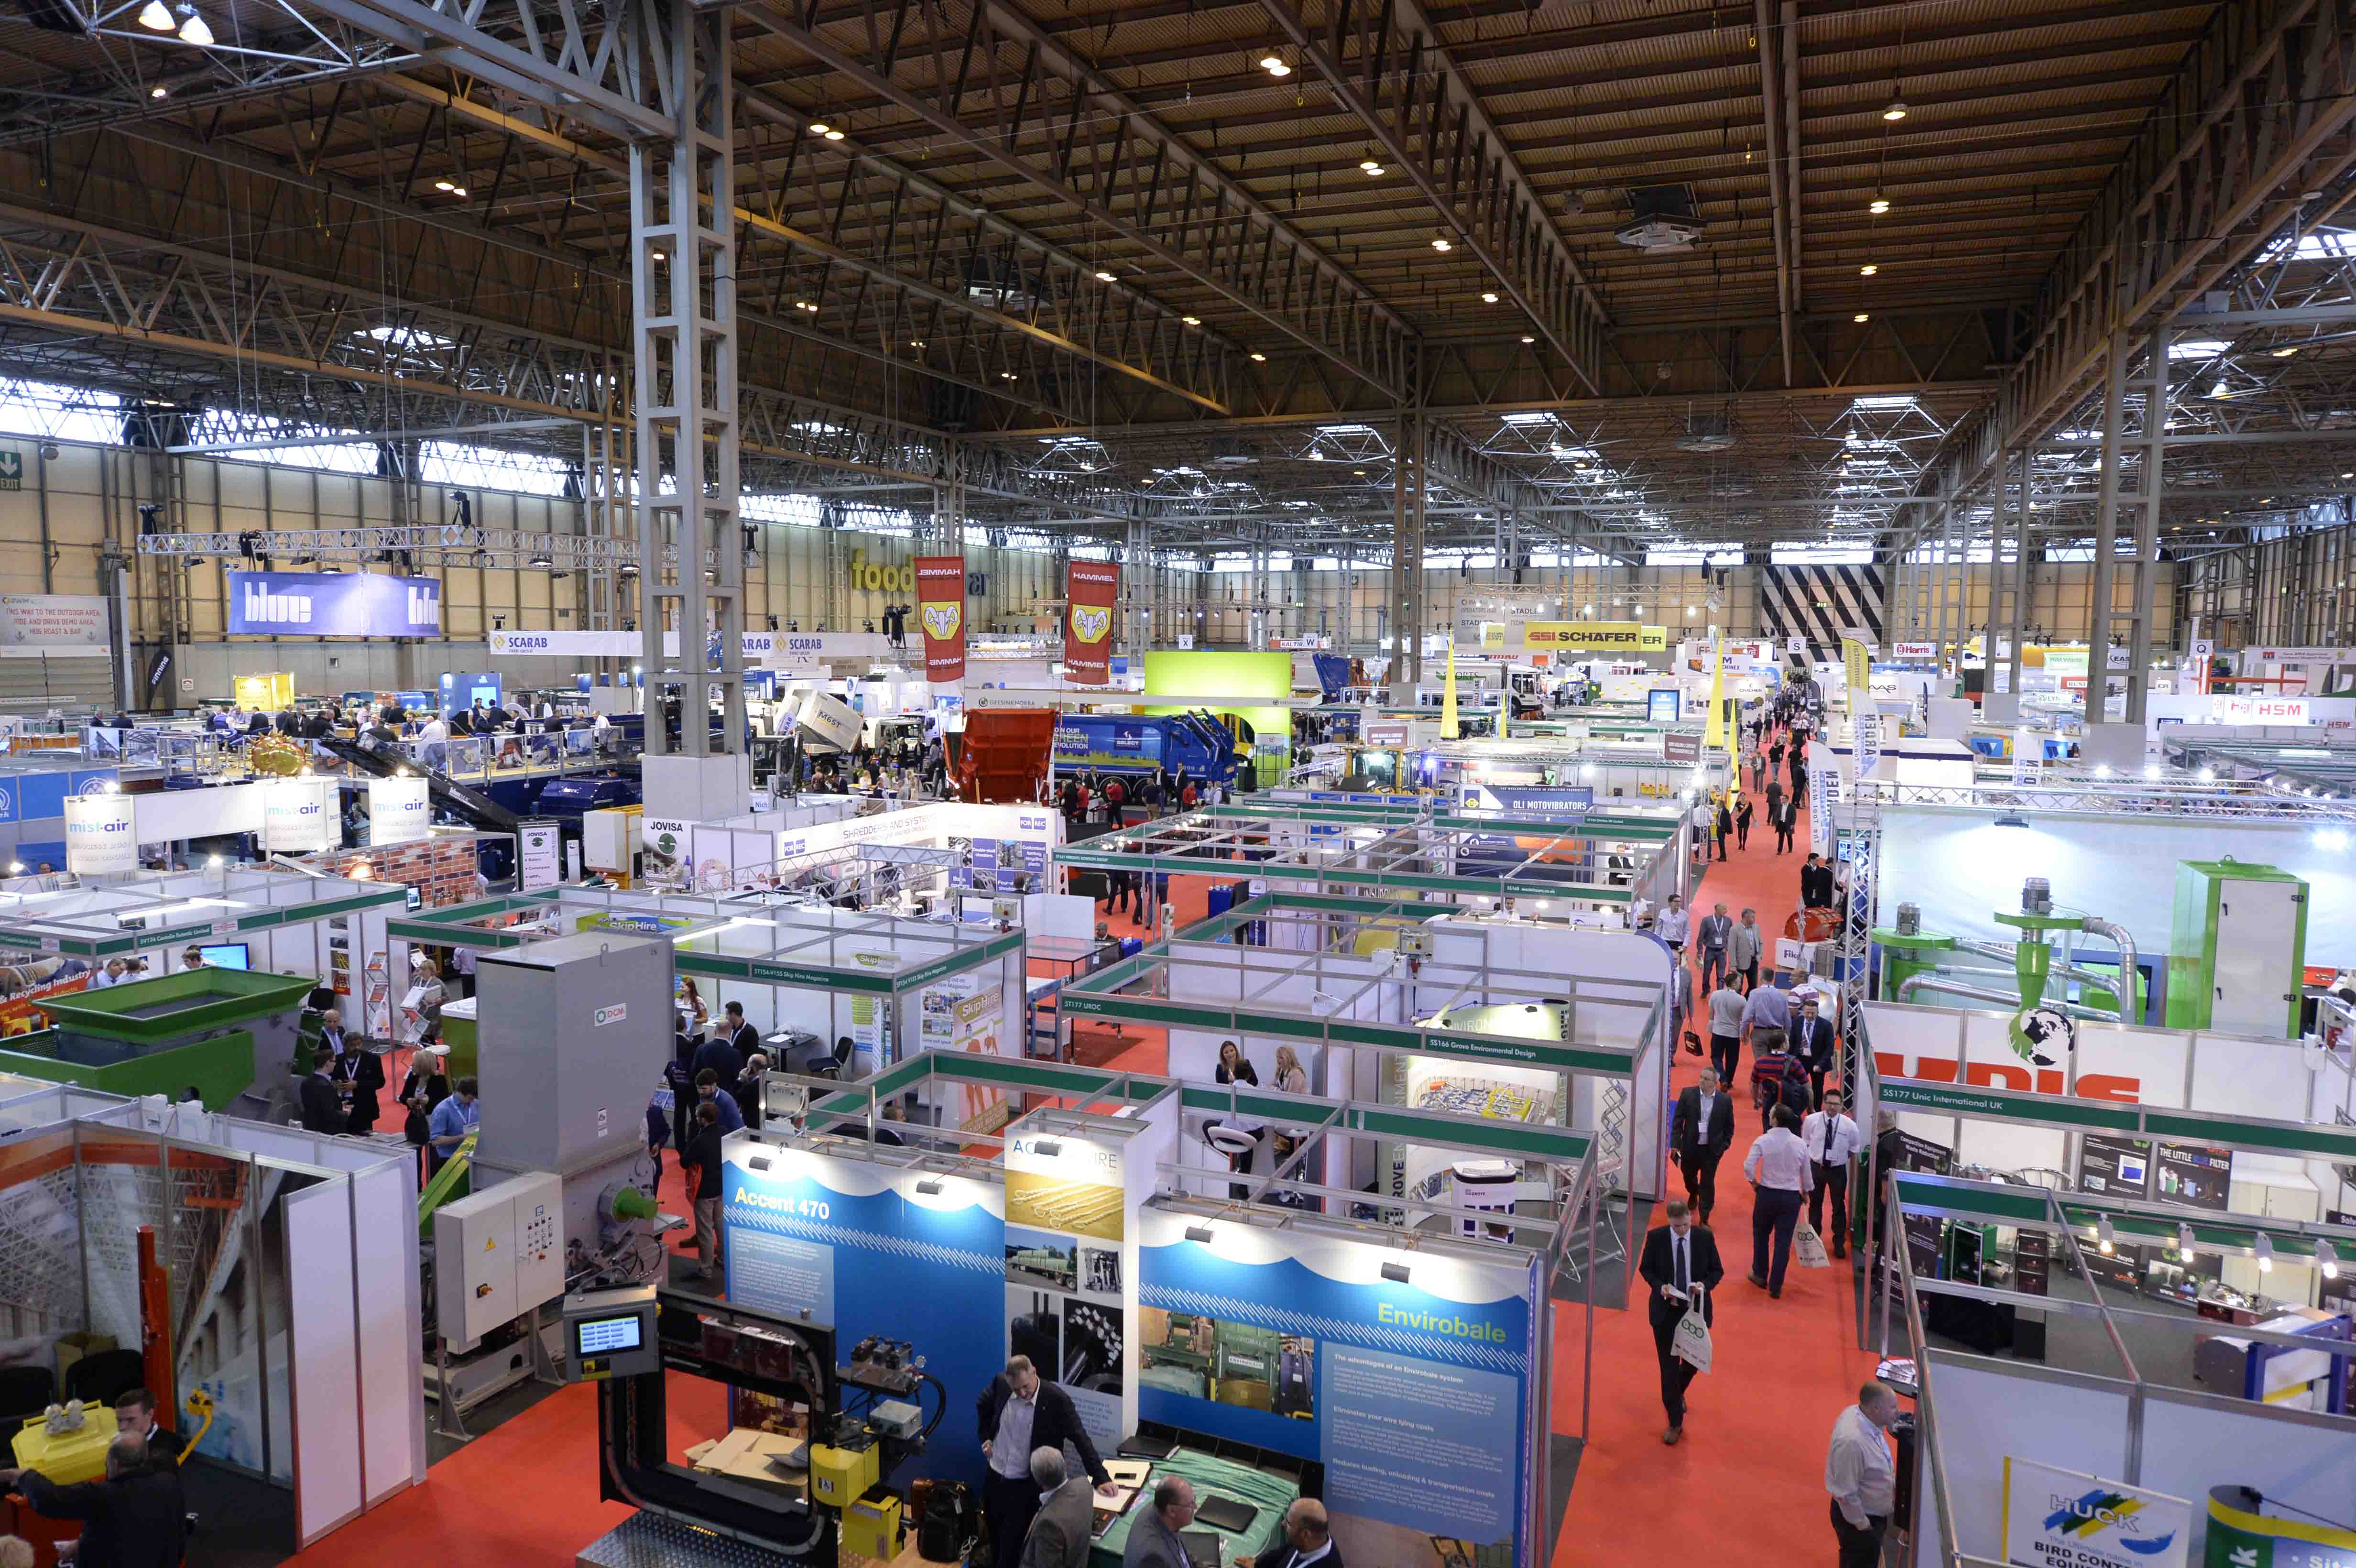 RWM 2016: Energy Event, Renewables Event, Water Event in one location